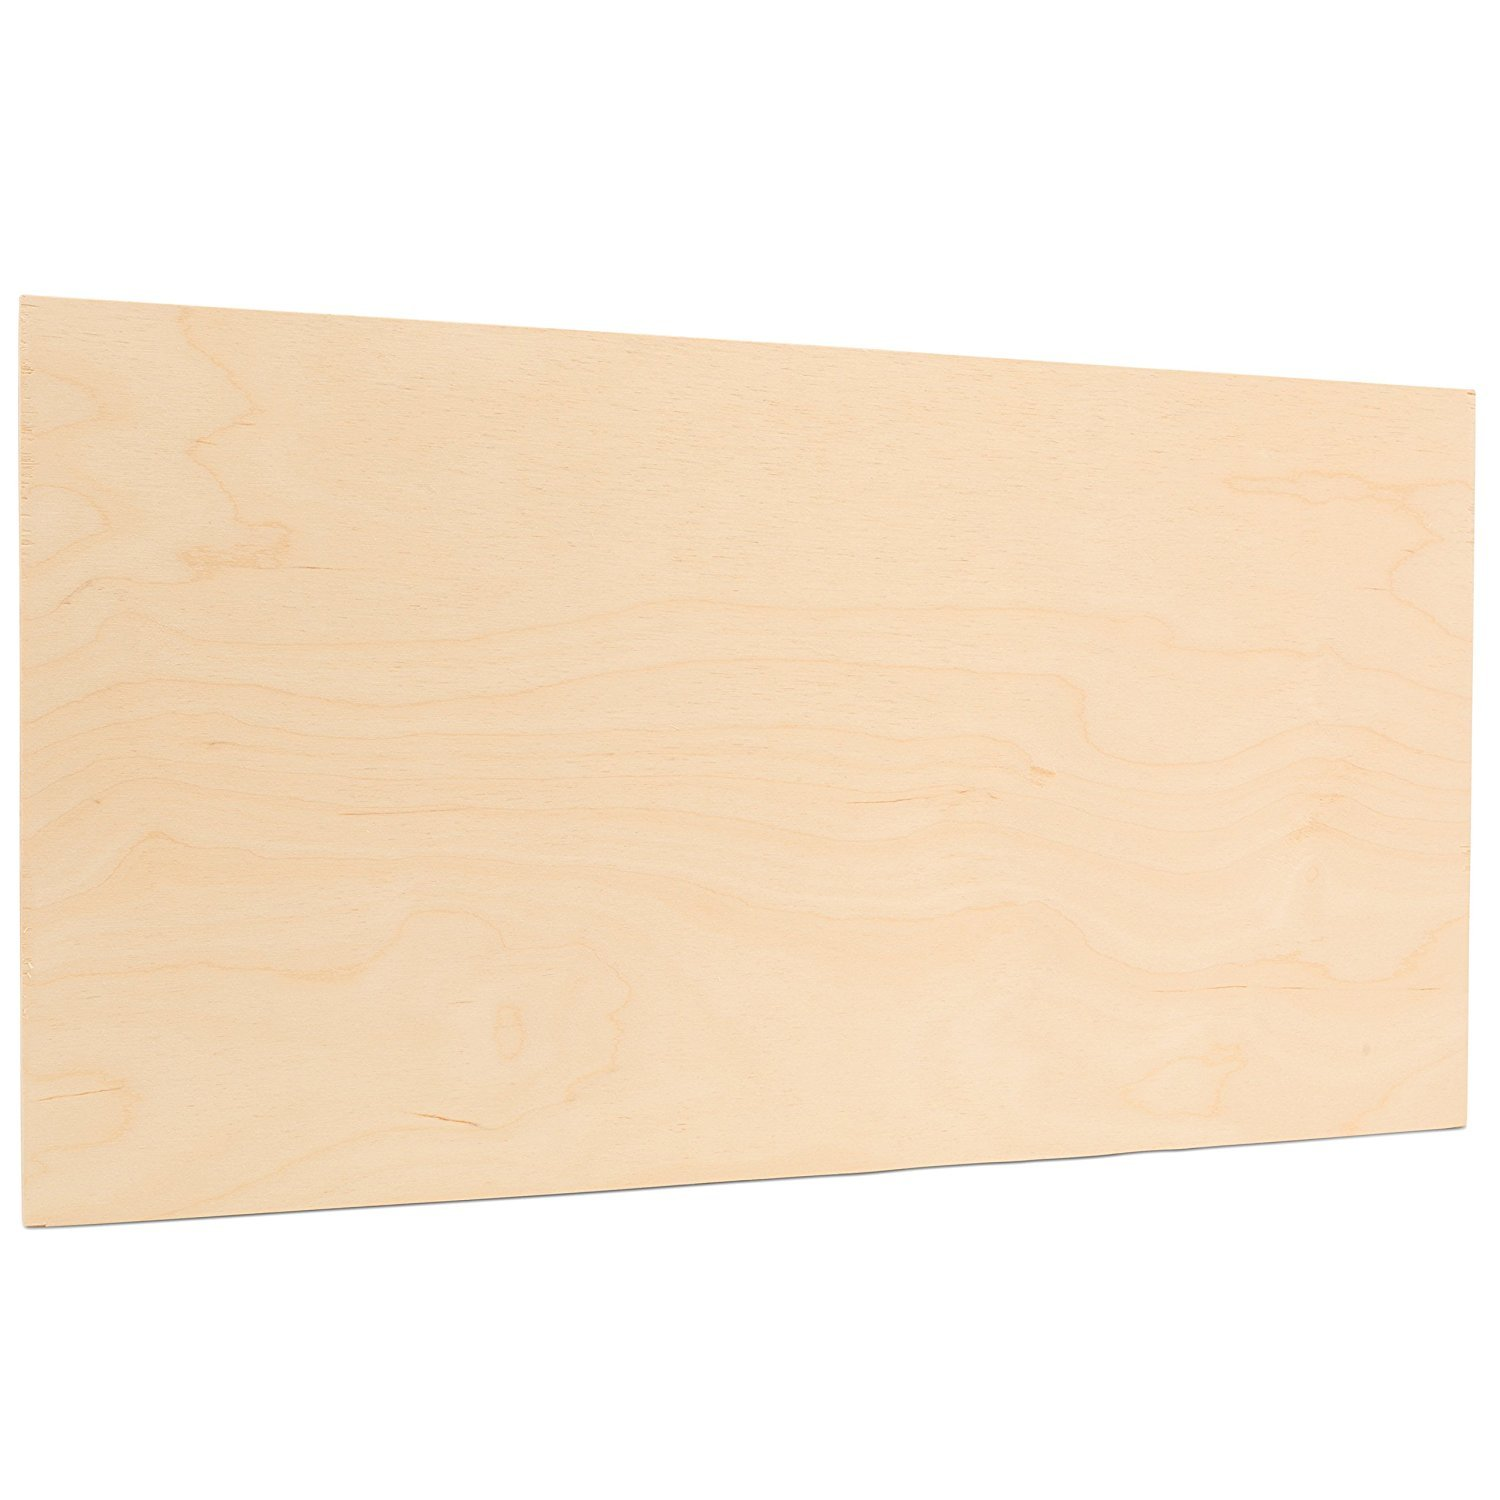 3 mm 1/8 x 18 x 24 Inch Premium Baltic Birch Plywood, Box of 8 B/BB Birch Veneer Sheets, Perfect for Laser CNC Cutting and Wood Burning Projects by Woodpeckers